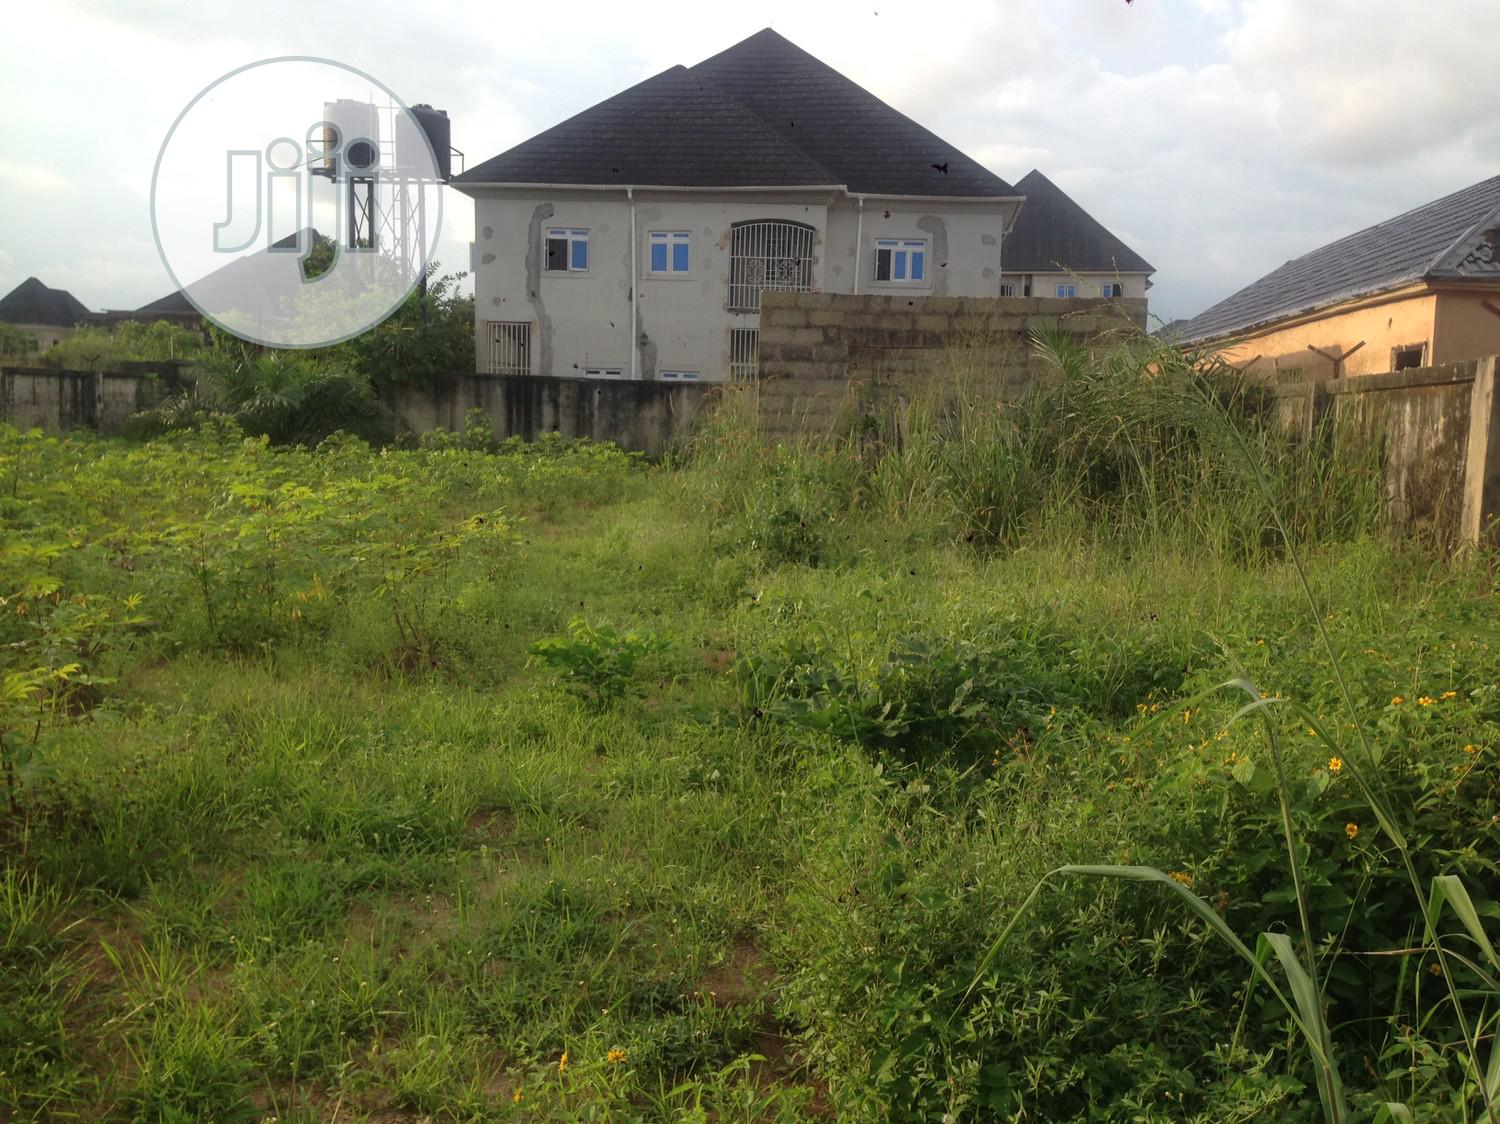 2 Plots Of Empty Land All Together For Rent Close To New Appeal Court | Land & Plots for Rent for sale in Owerri, Imo State, Nigeria